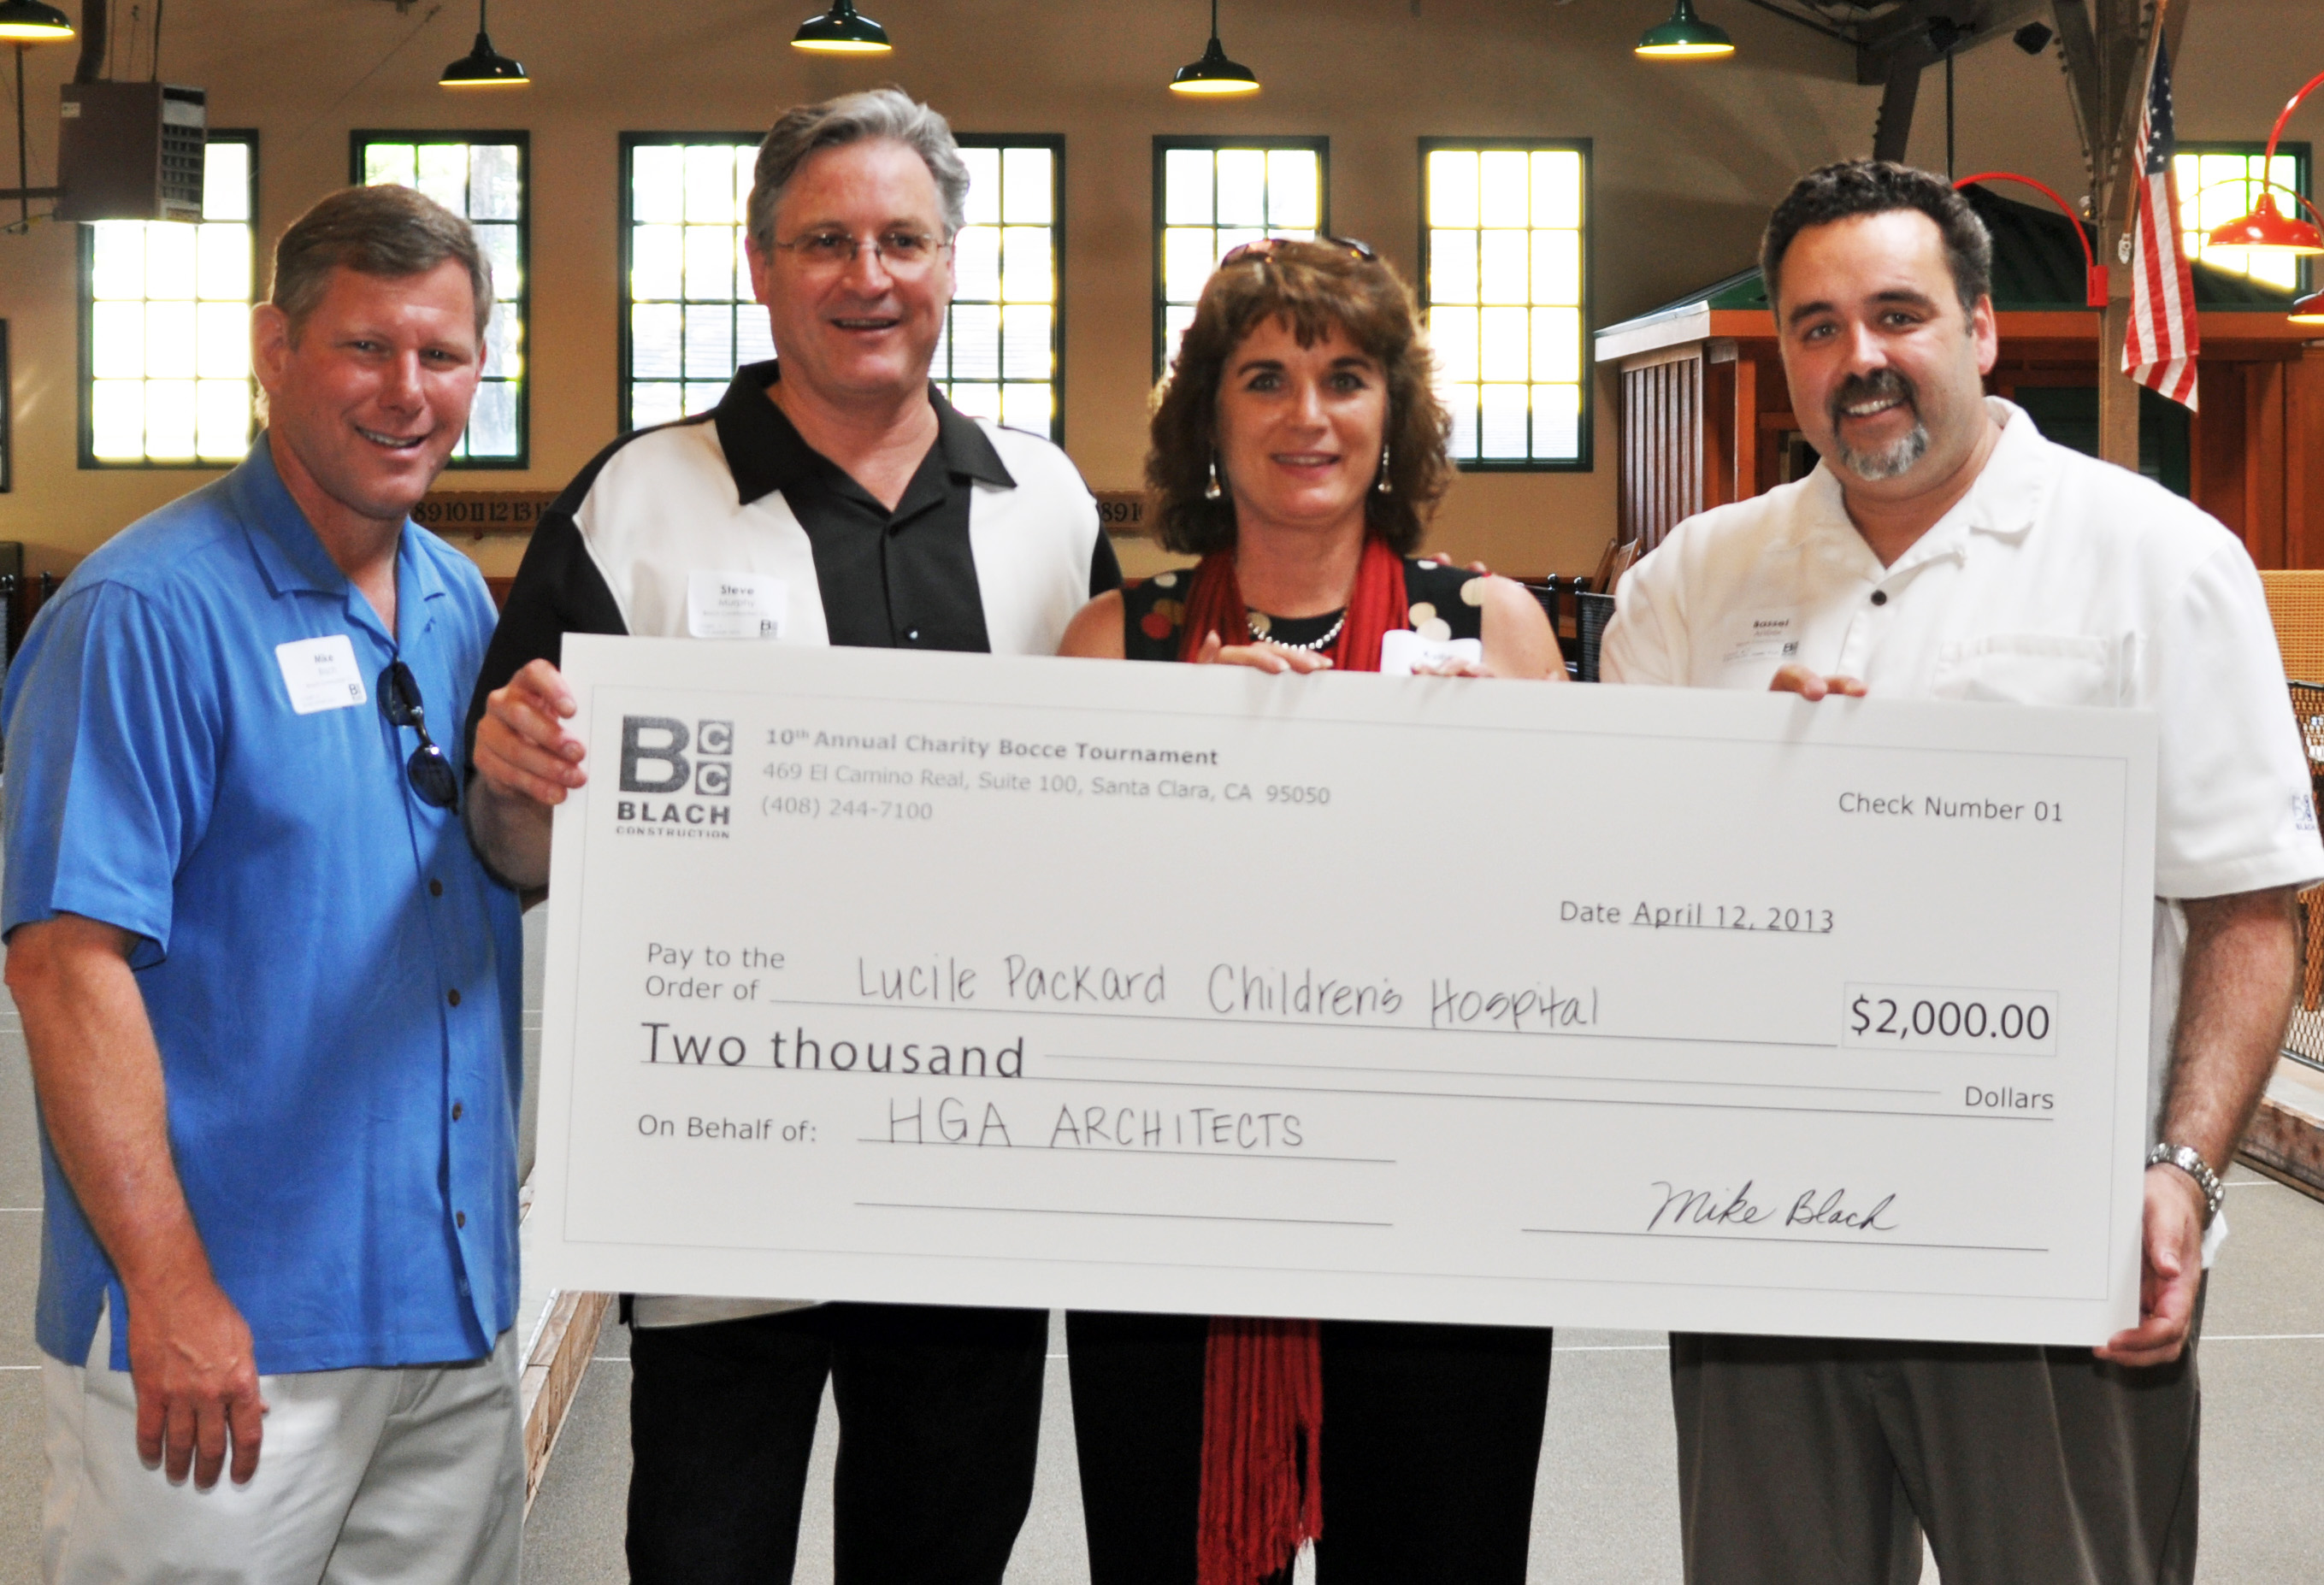 Charity Bocce Ball Tournament Mike Blach, Steve Murphy, Kelly Cardella and Bassel Anber Presenting Check